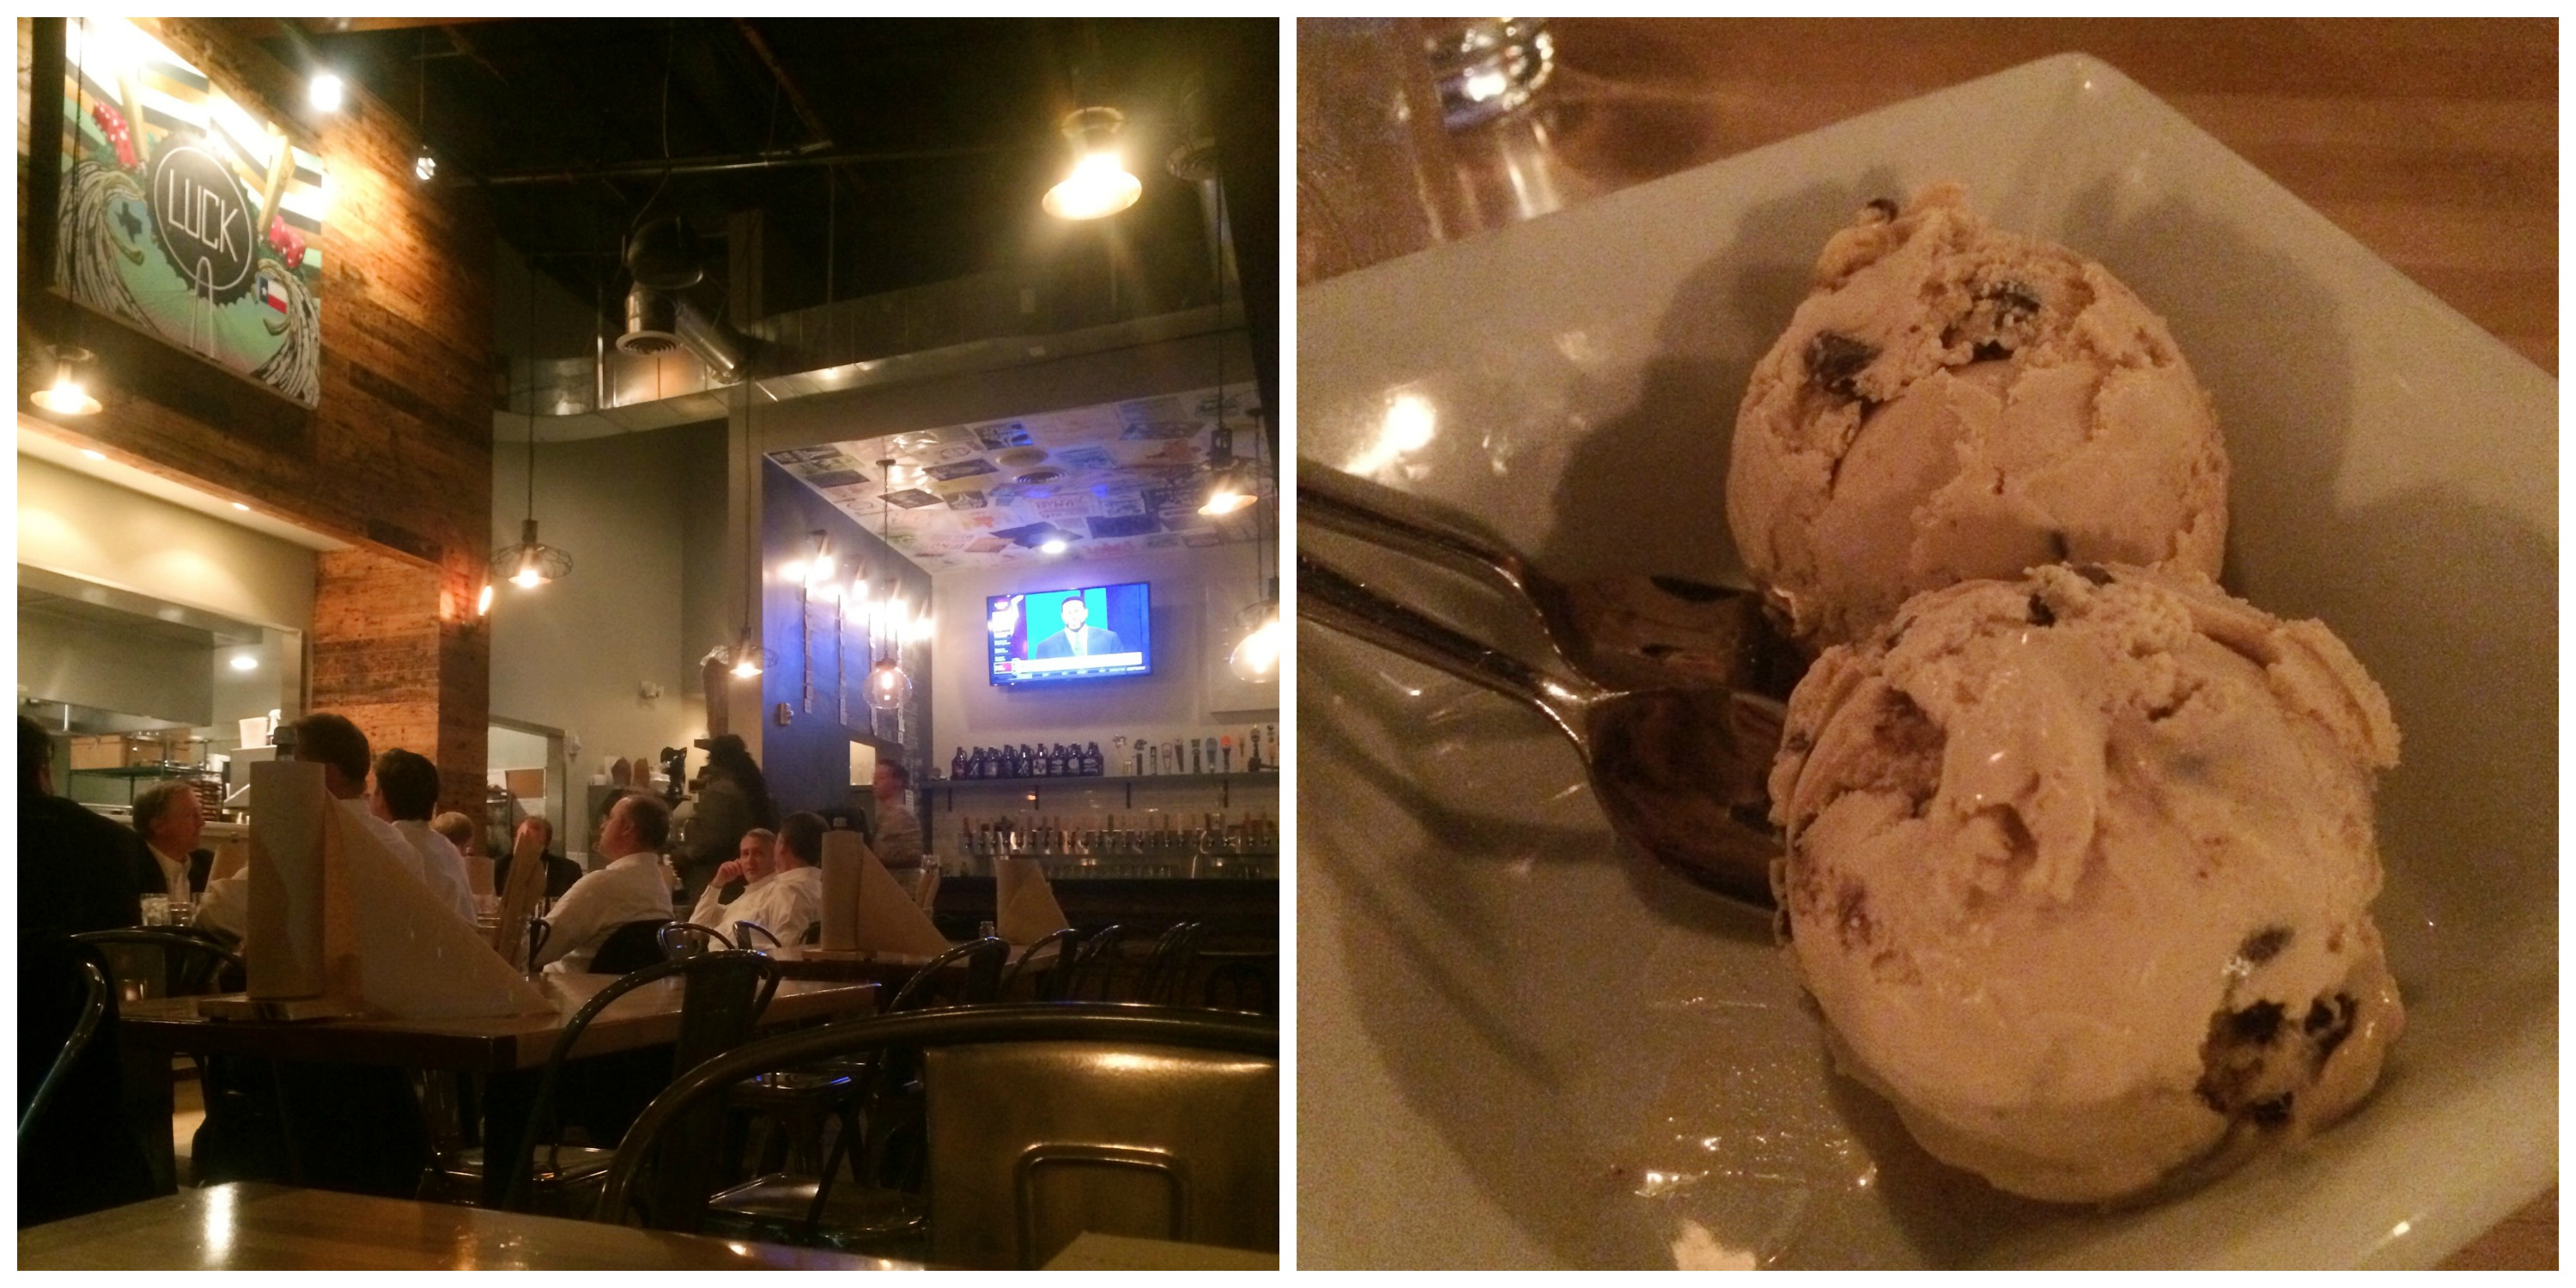 Beer Ice Cream at Luck